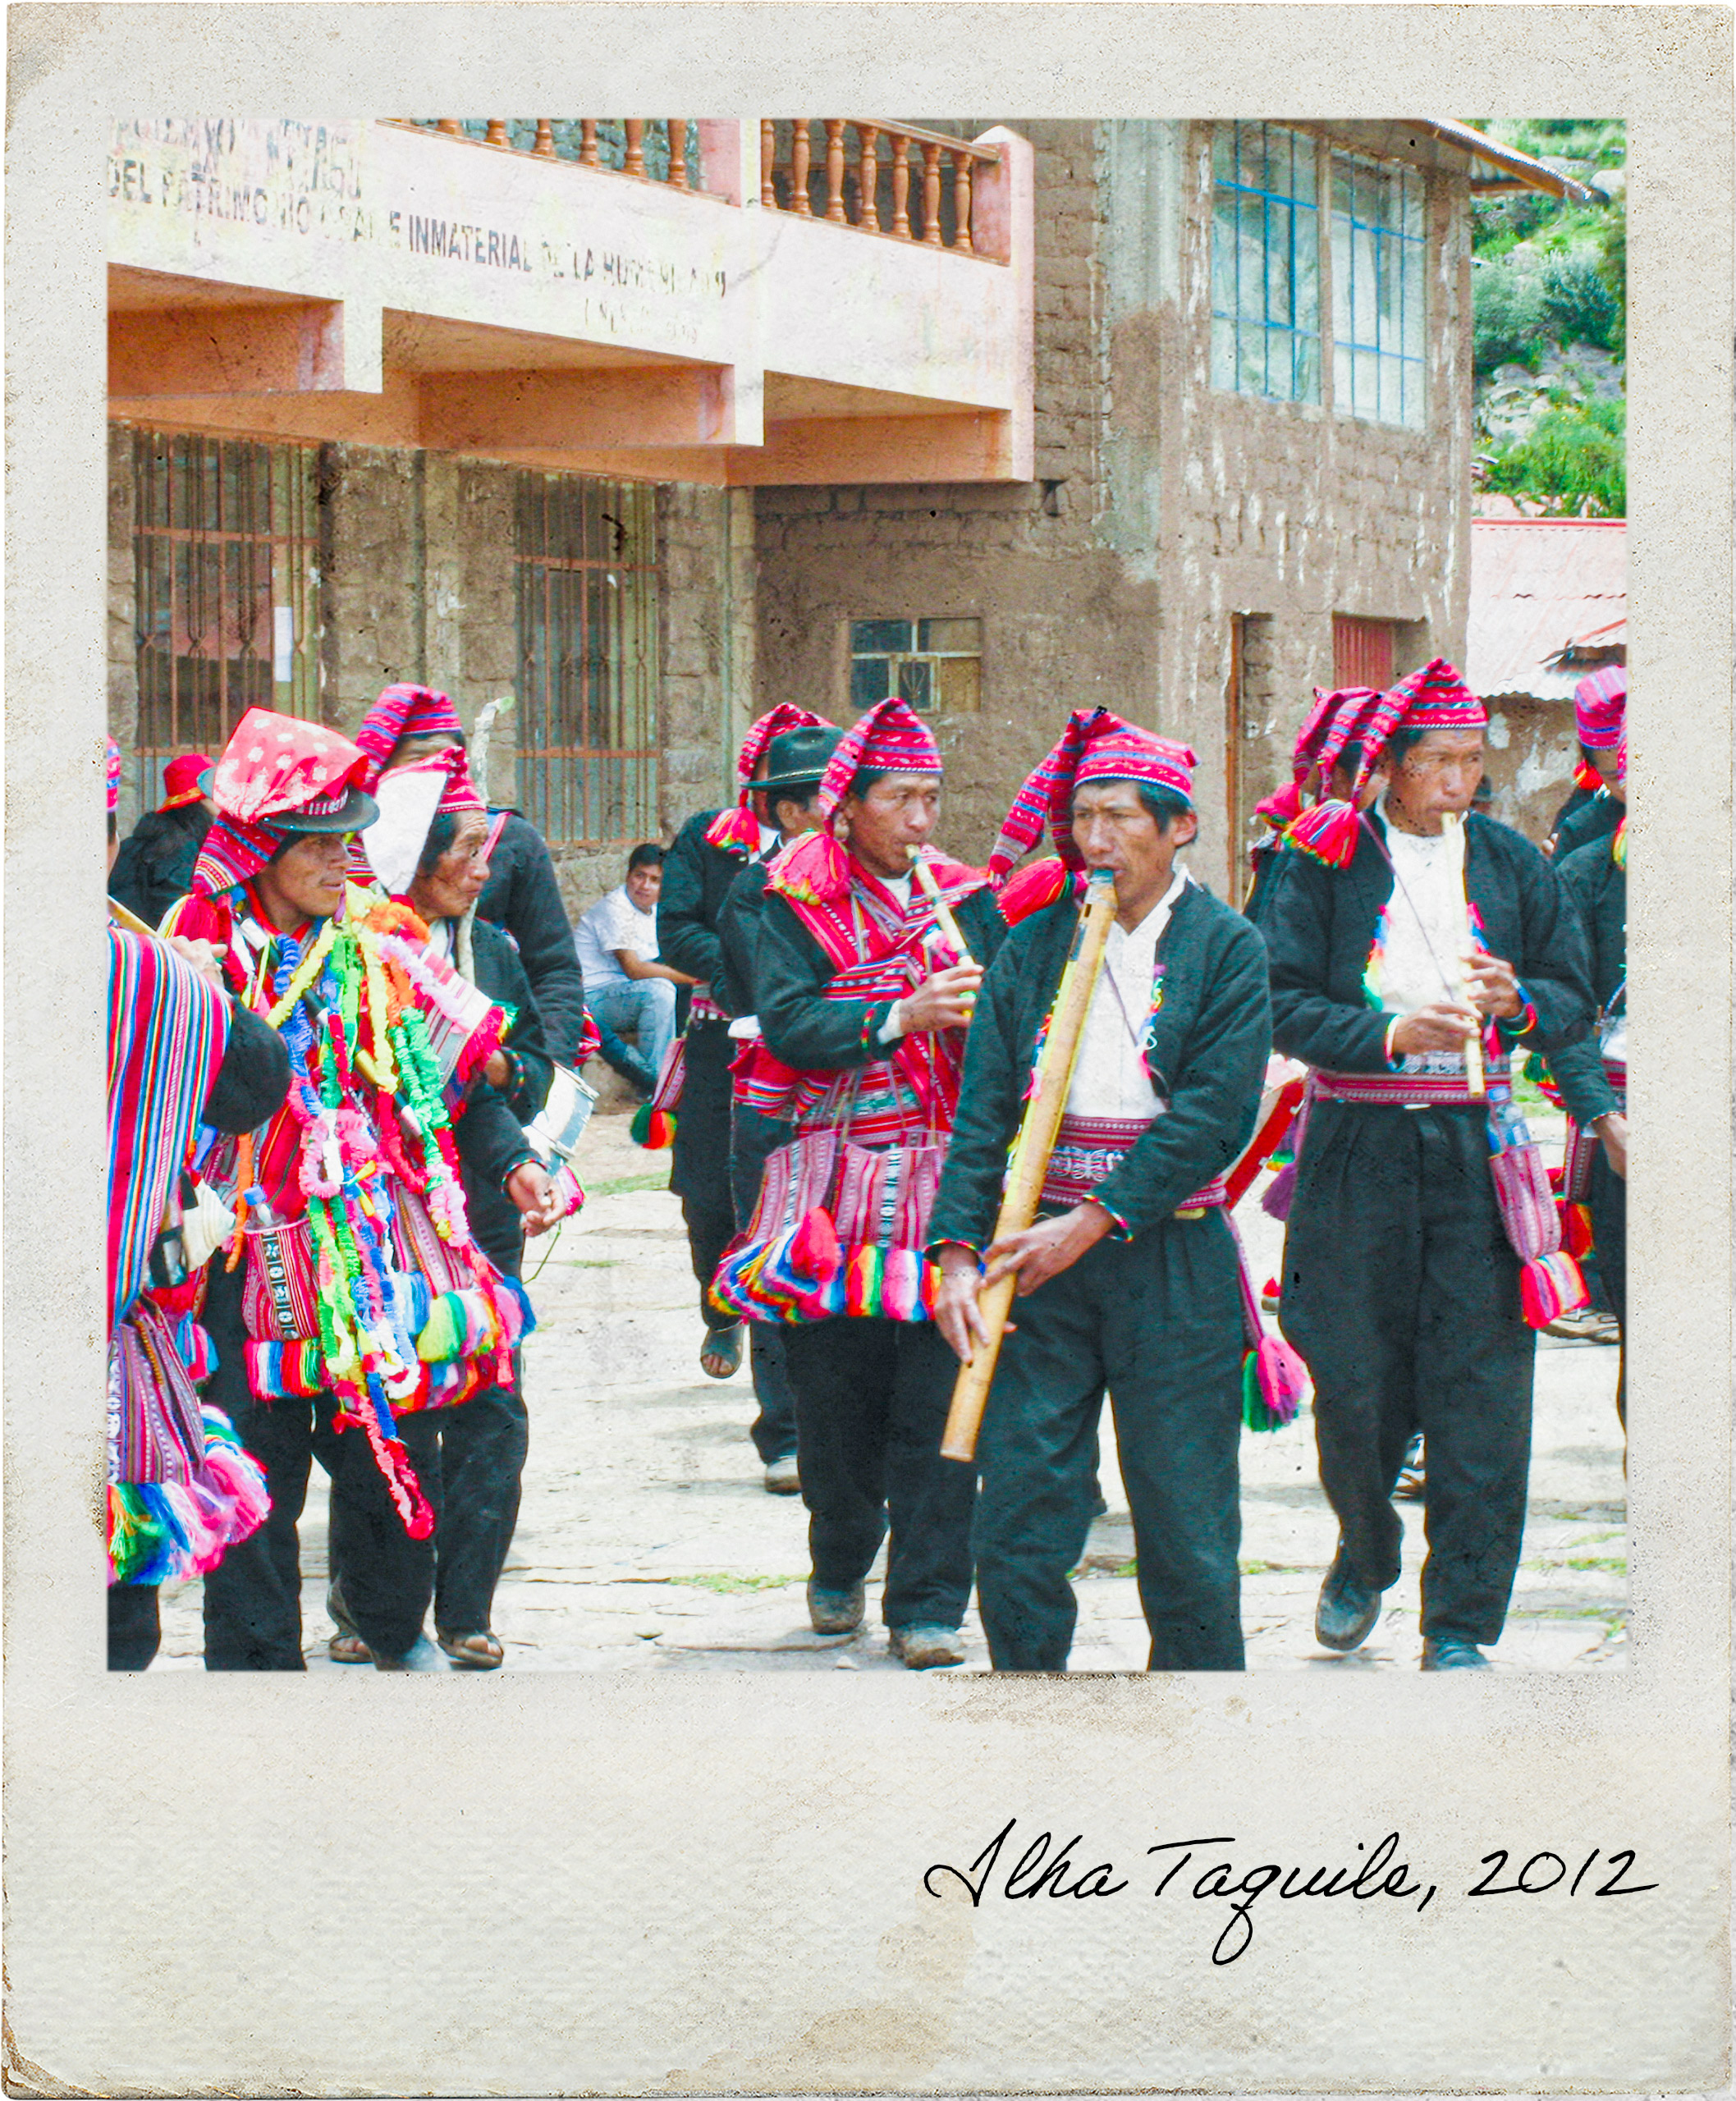 Taquile people